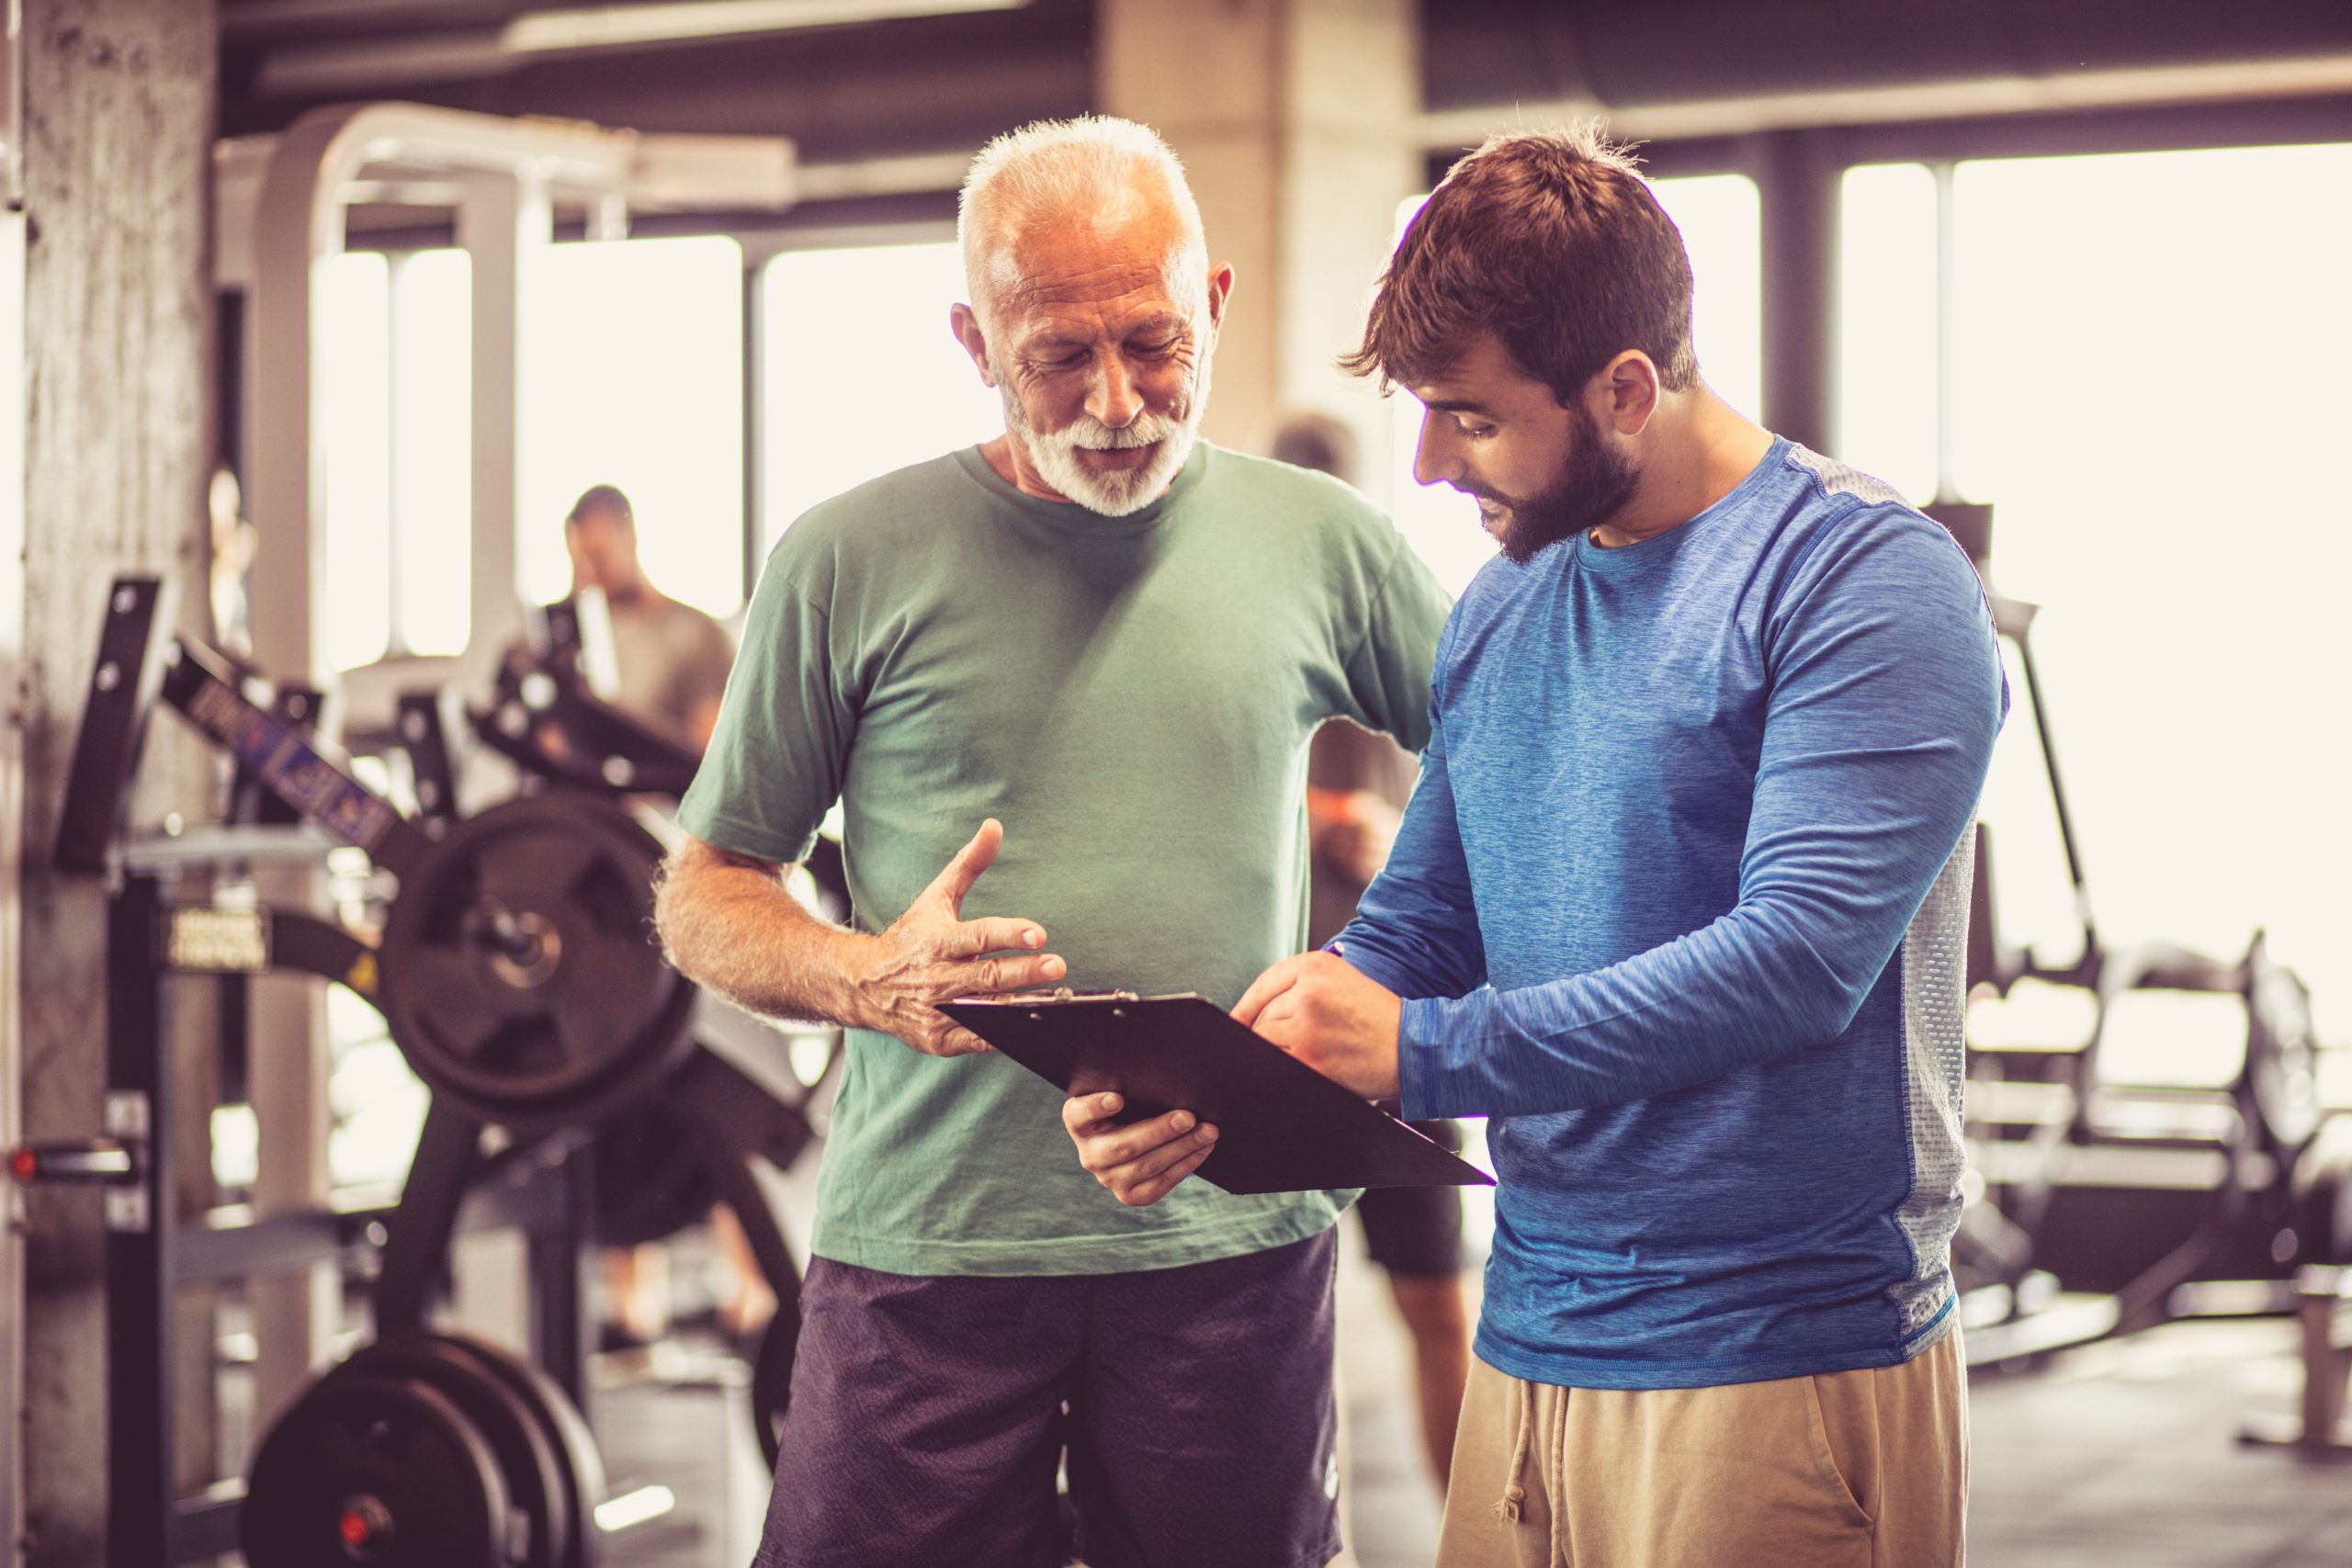 Sports performance specialist speaks with client in a gym